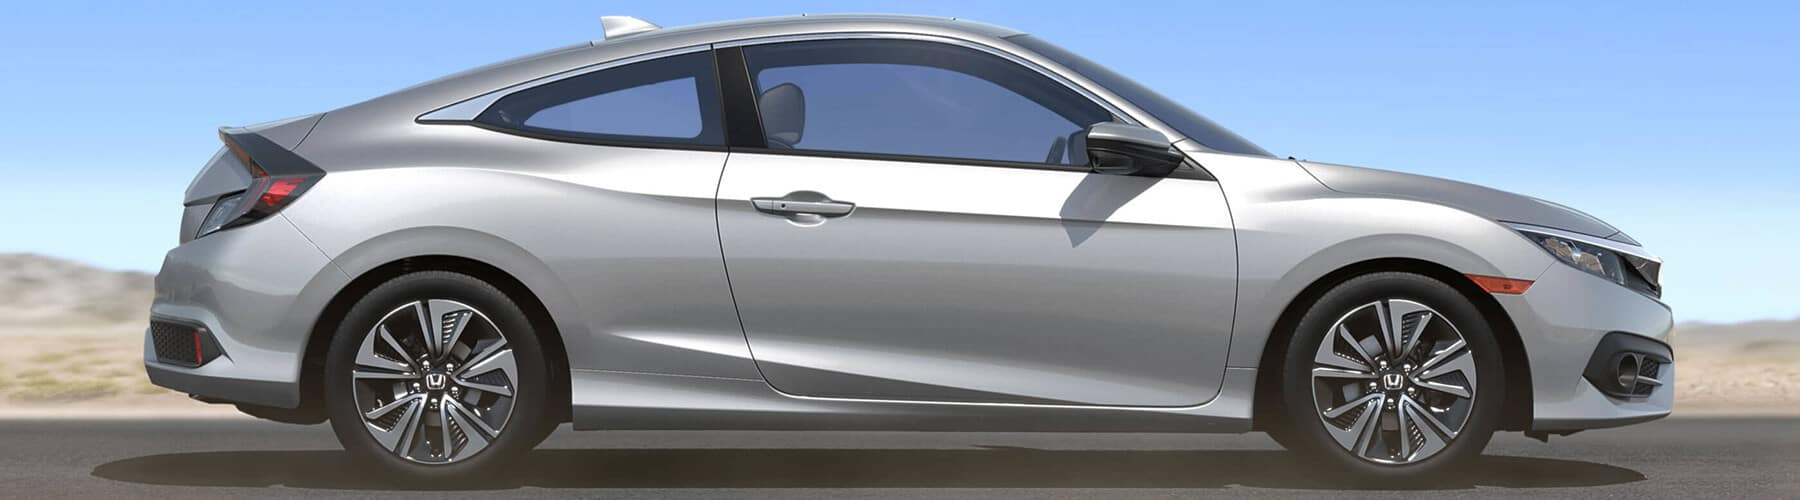 2018 Honda Civic Coupe Banner